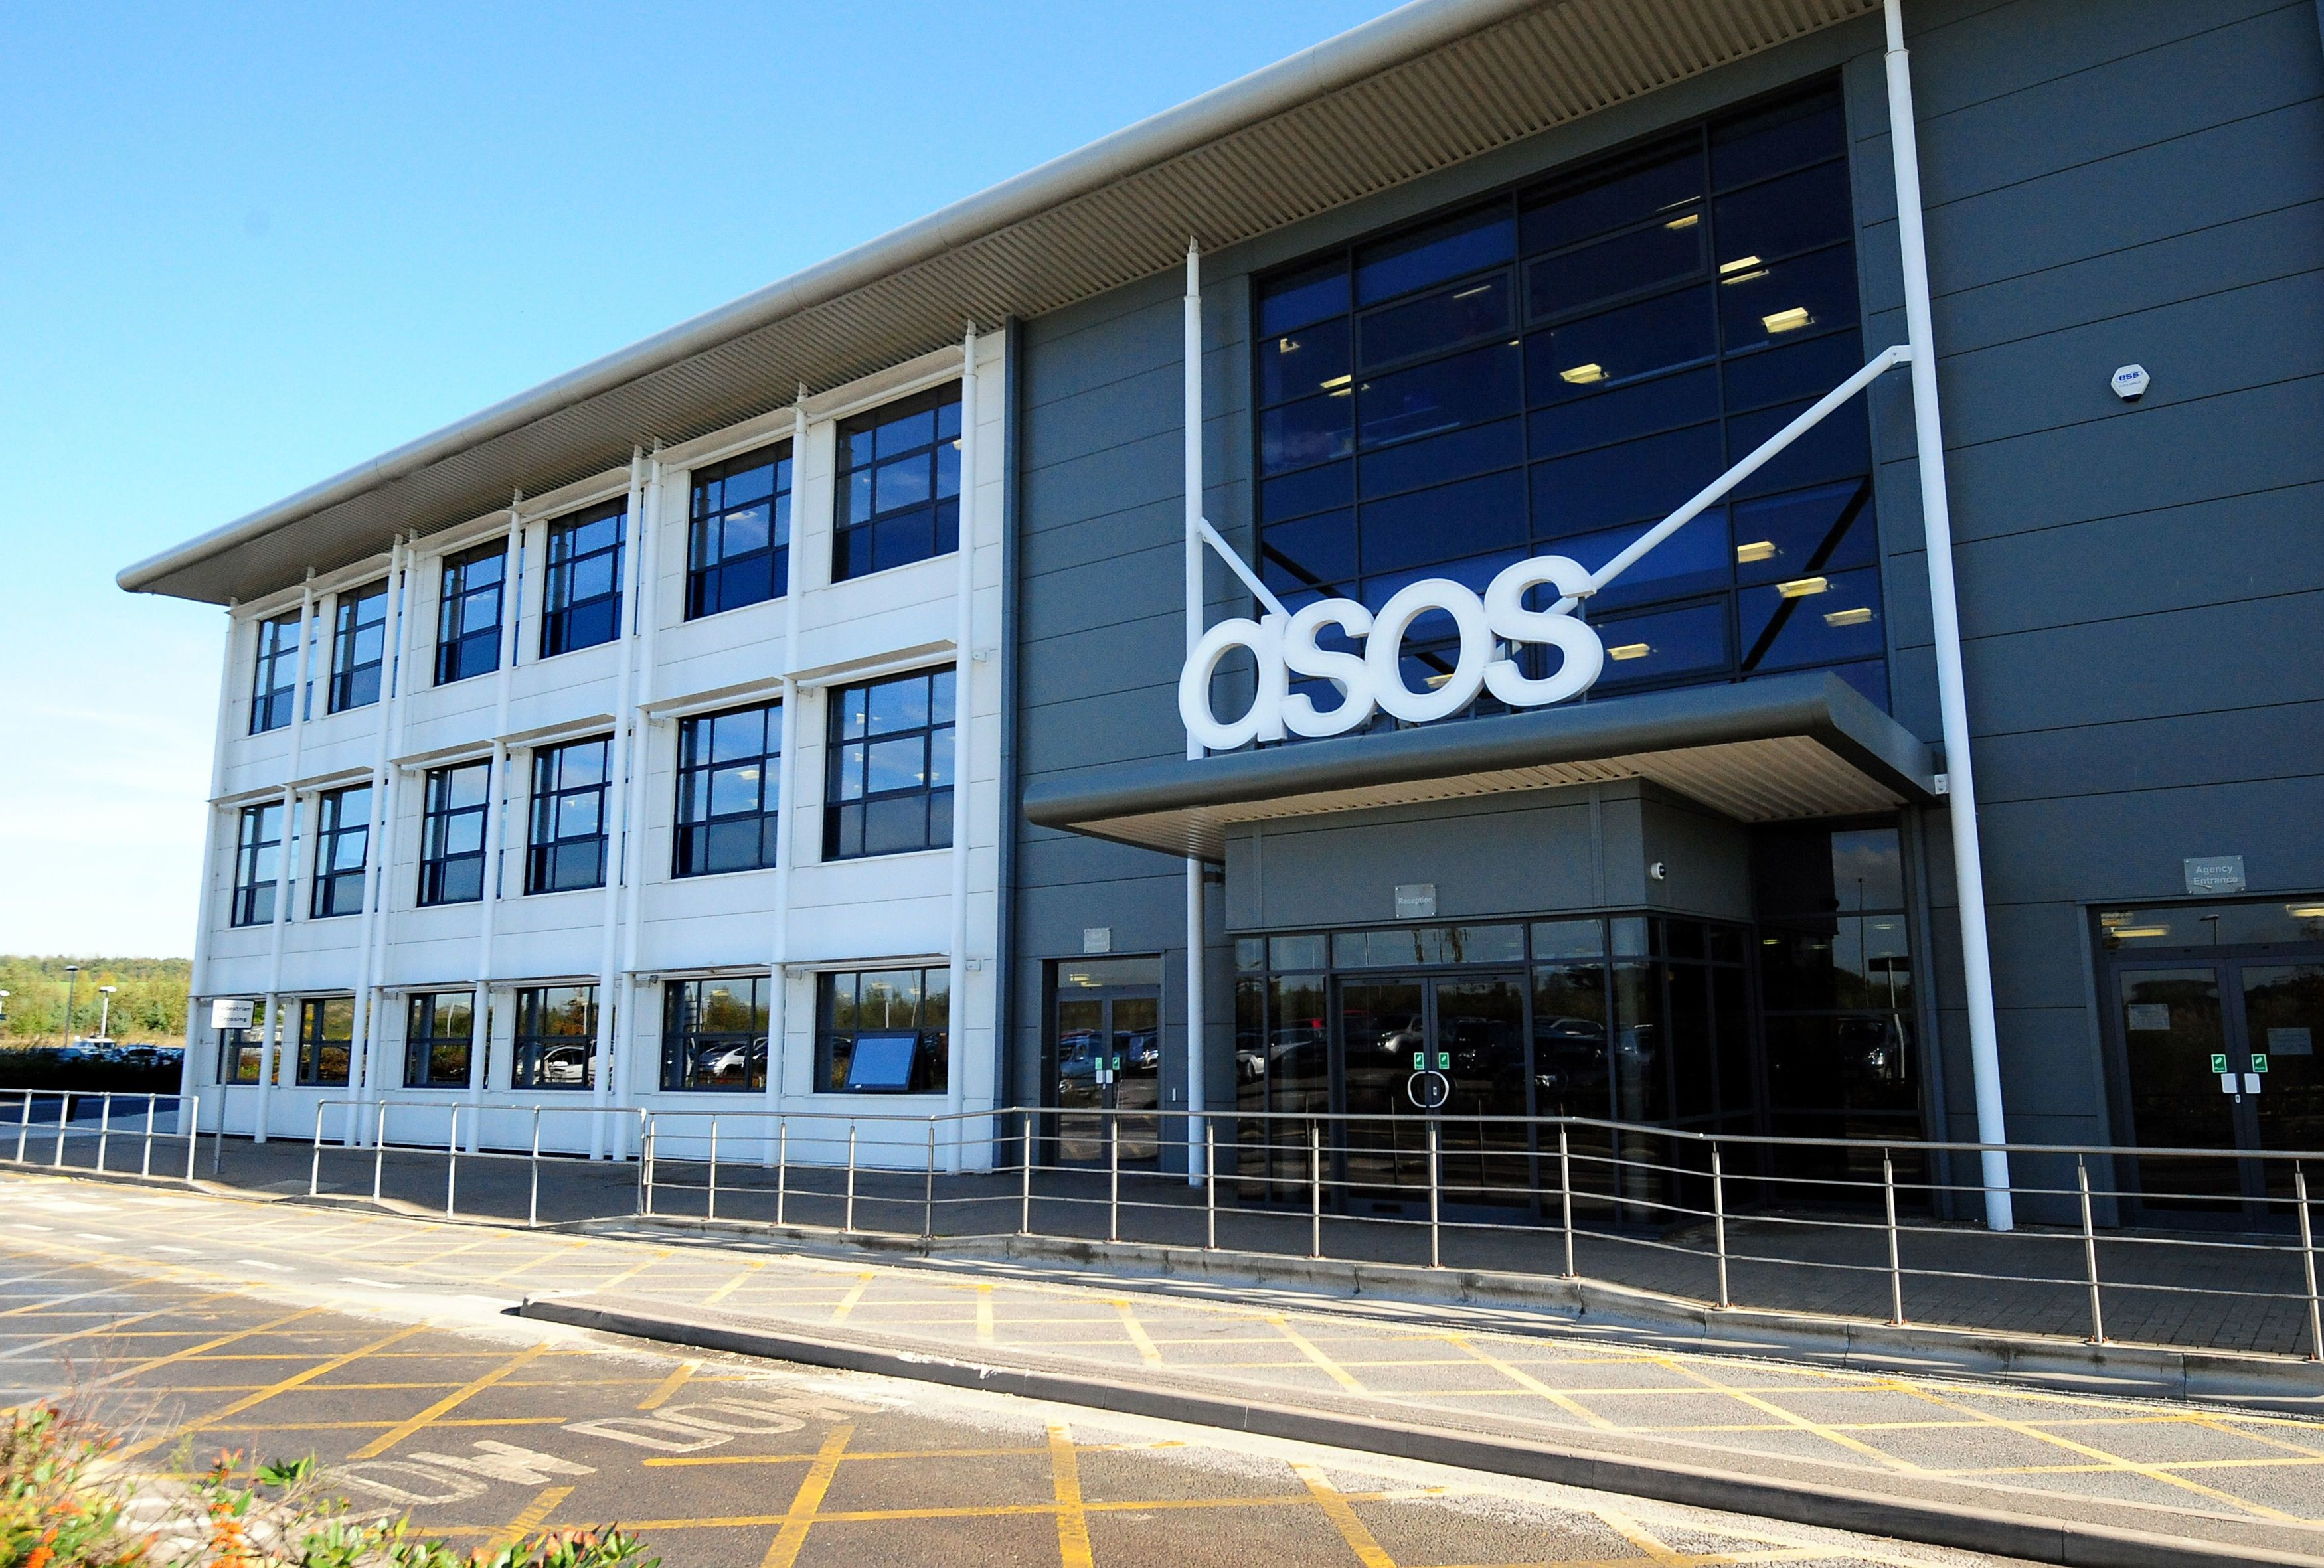 Asos Warns Of 'Significant Deterioration' In